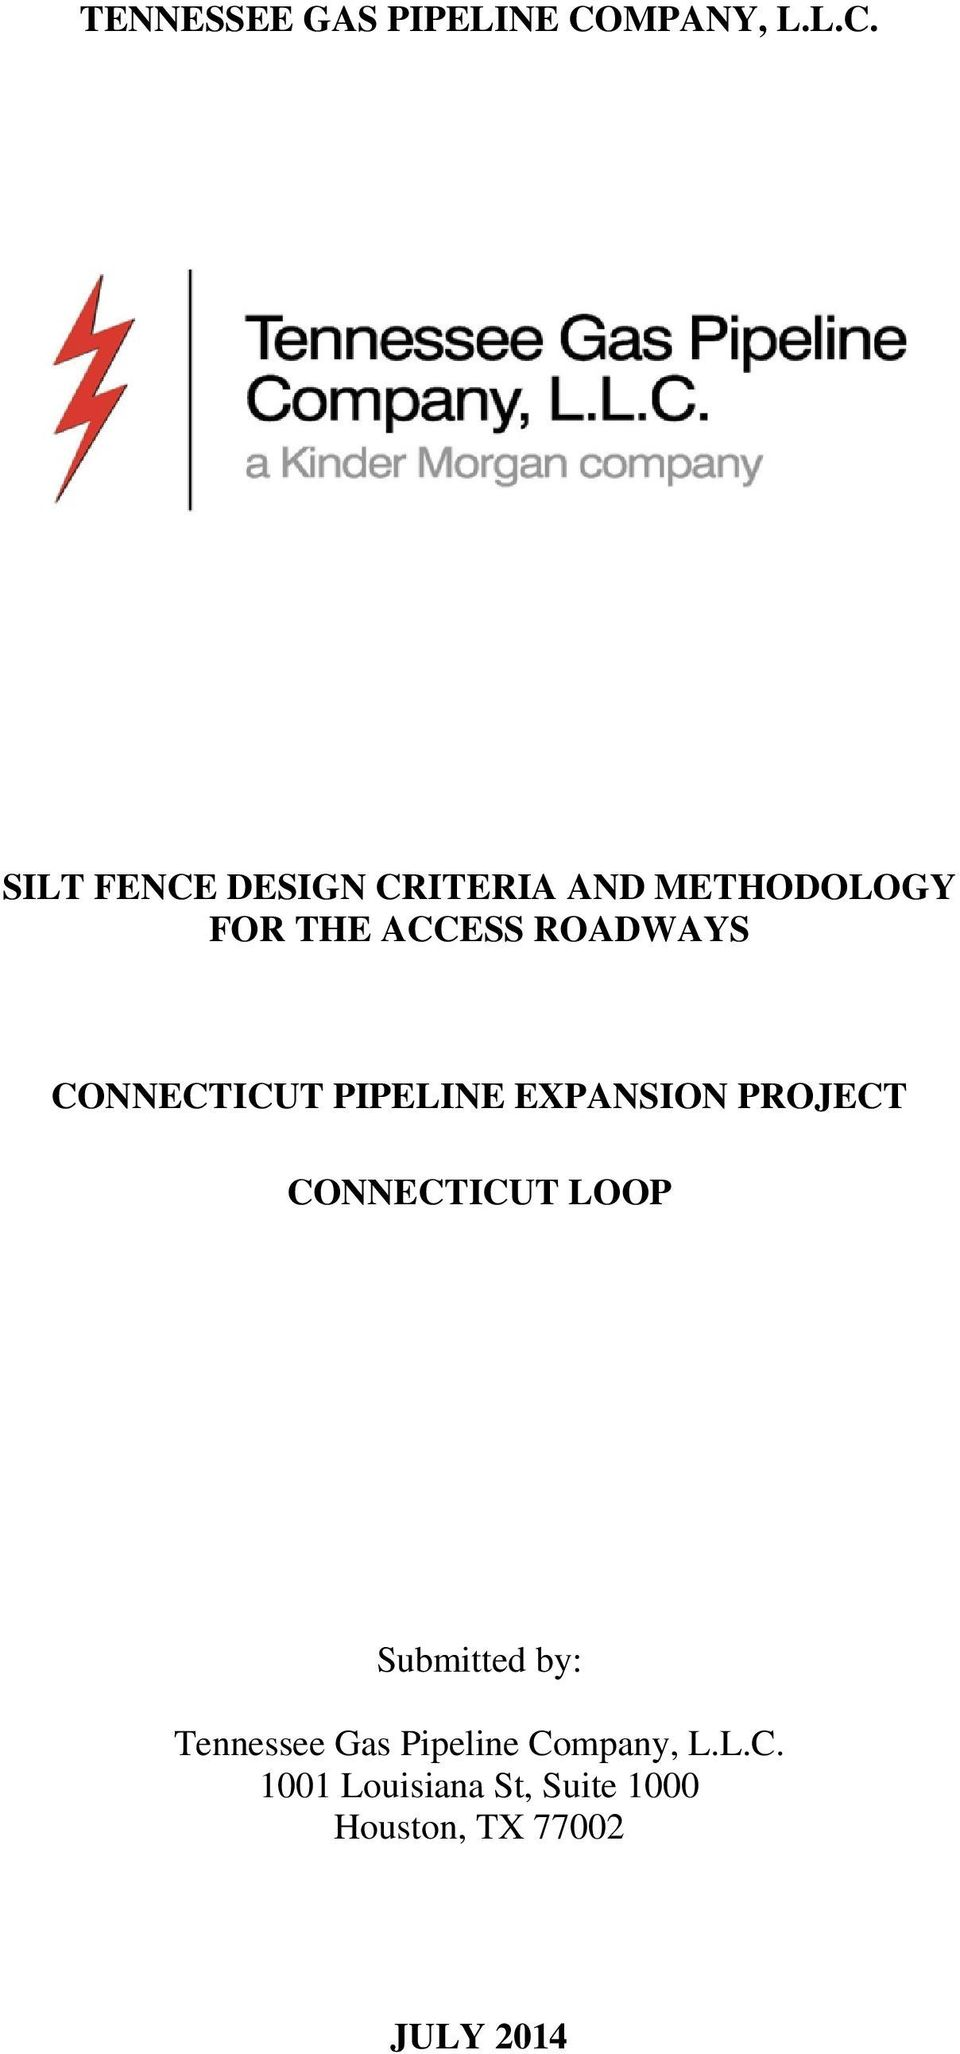 SILT FENCE DESIGN CRITERIA AND METHODOLOGY FOR THE ACCESS ROADWAYS